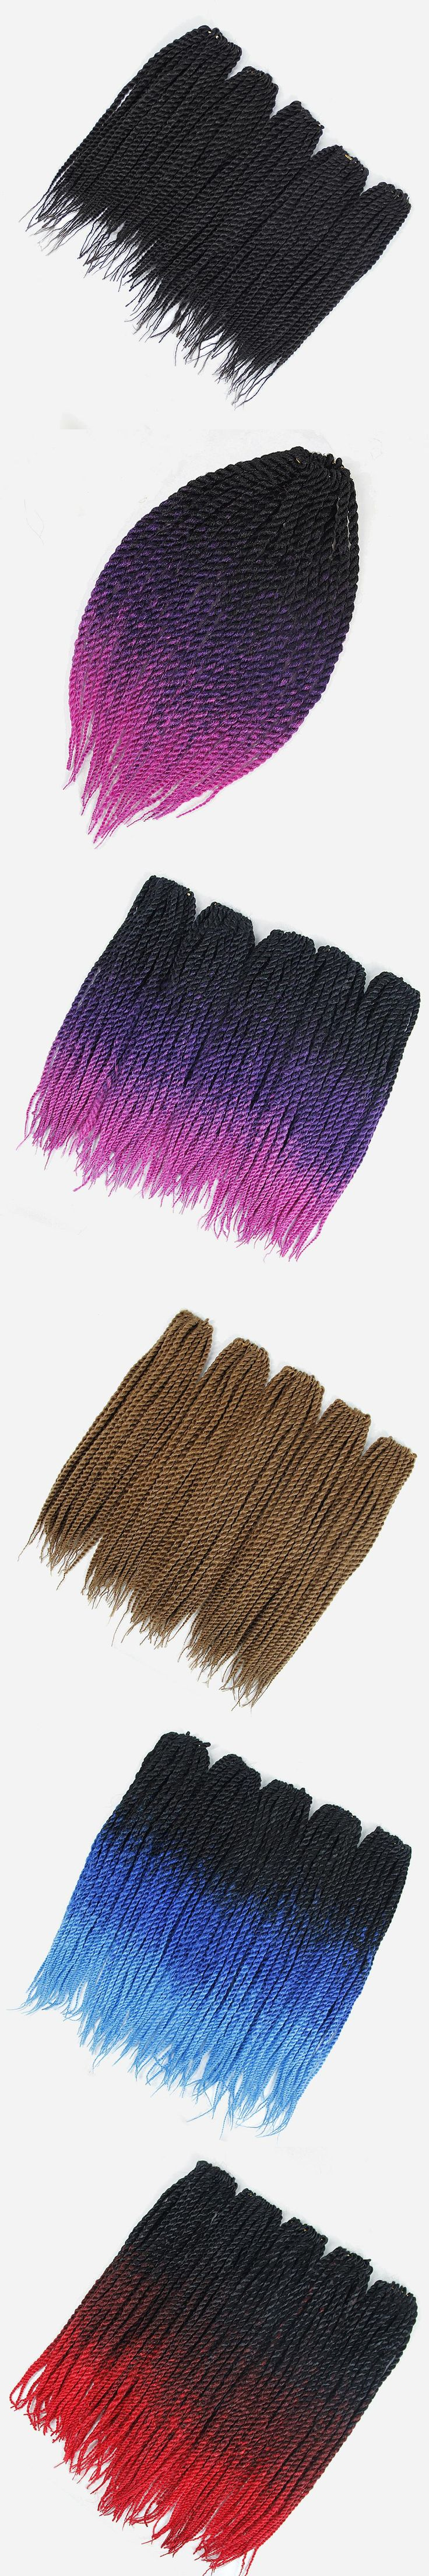 Yhair 18 Inch  Crotchet Braids 16 Colors Synthetic Senegalese Twist Crochet Hair Extensions 1-9Packs /Lot